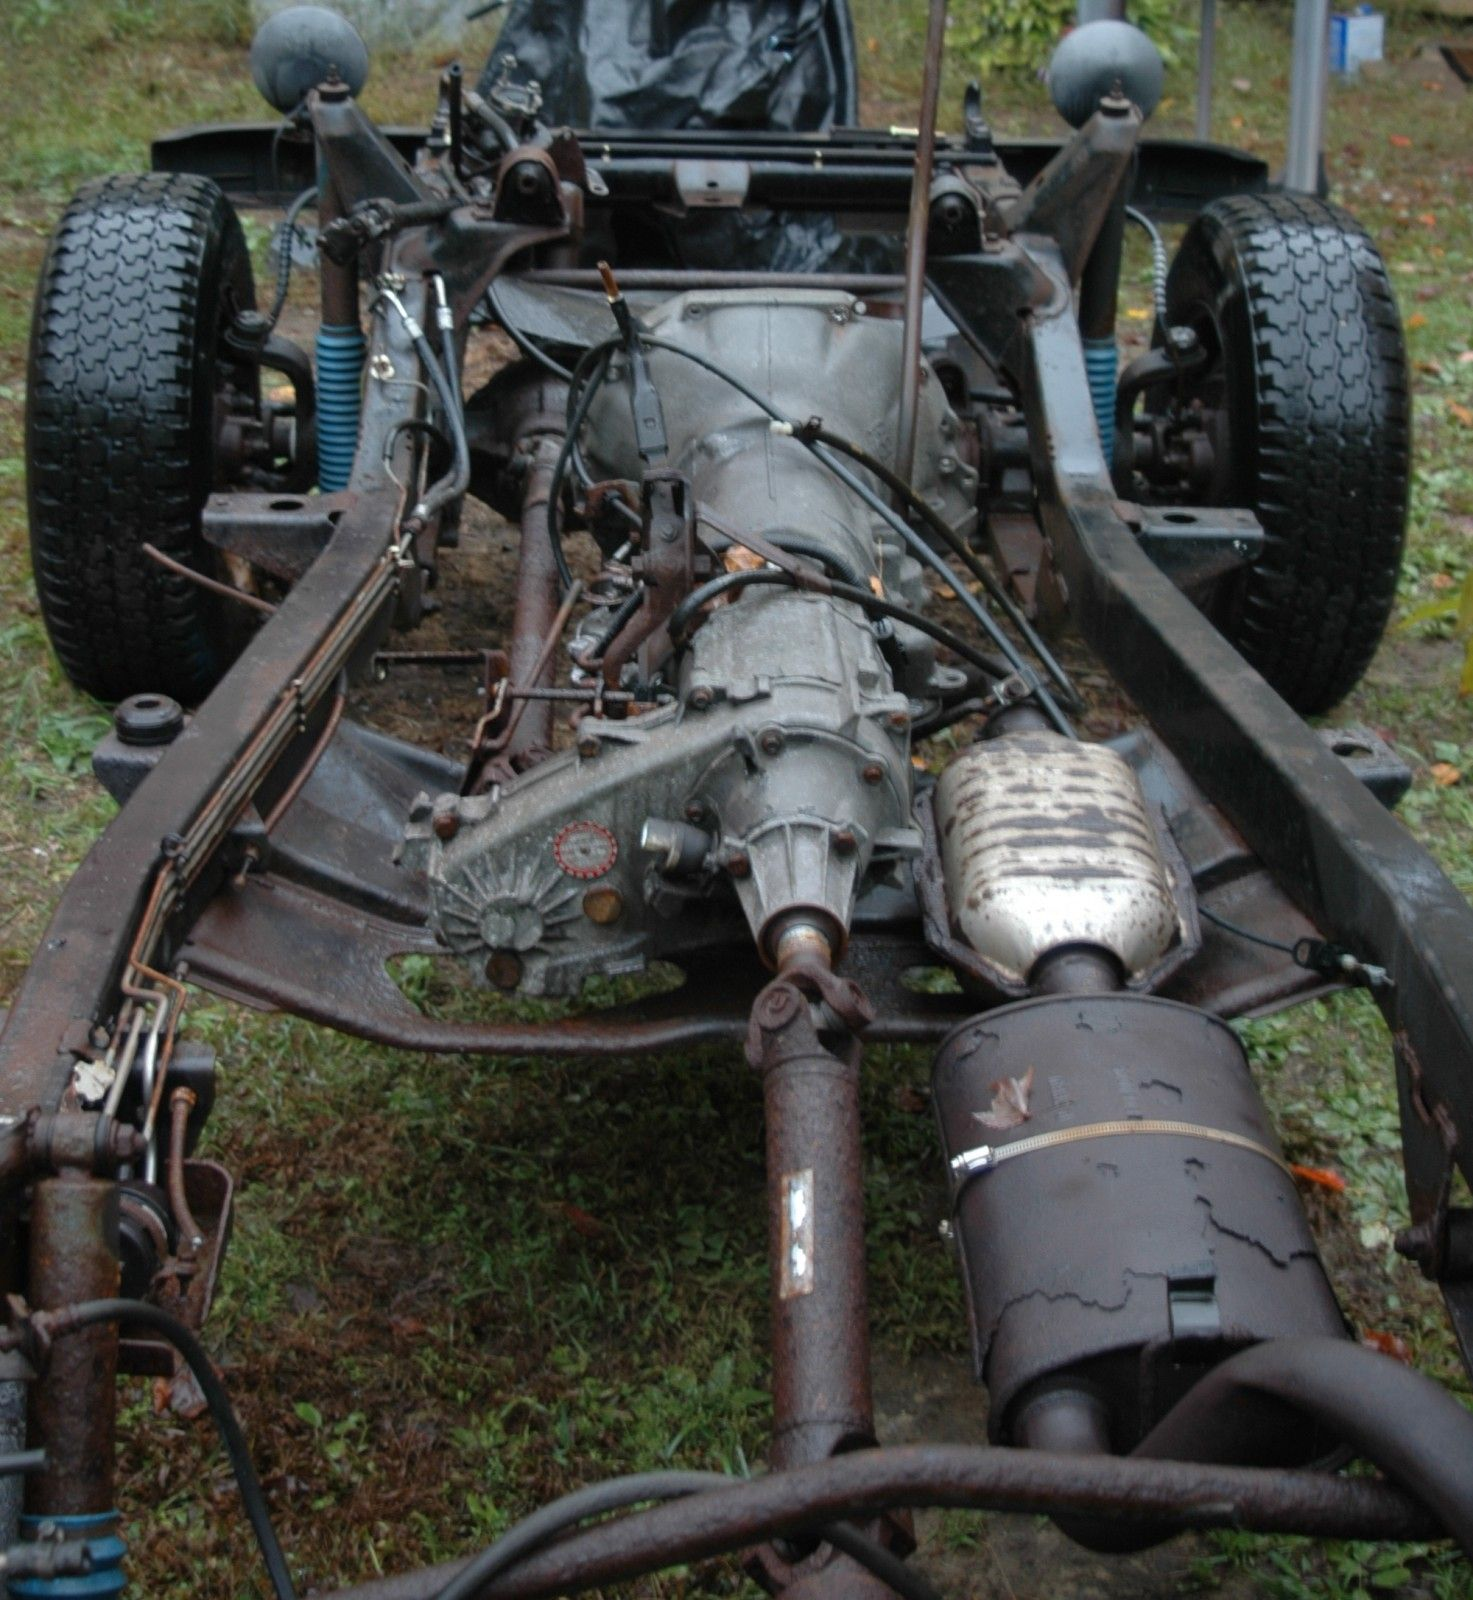 yj frame off restore how to restore and protect a tired fram jeep rh pinterest com